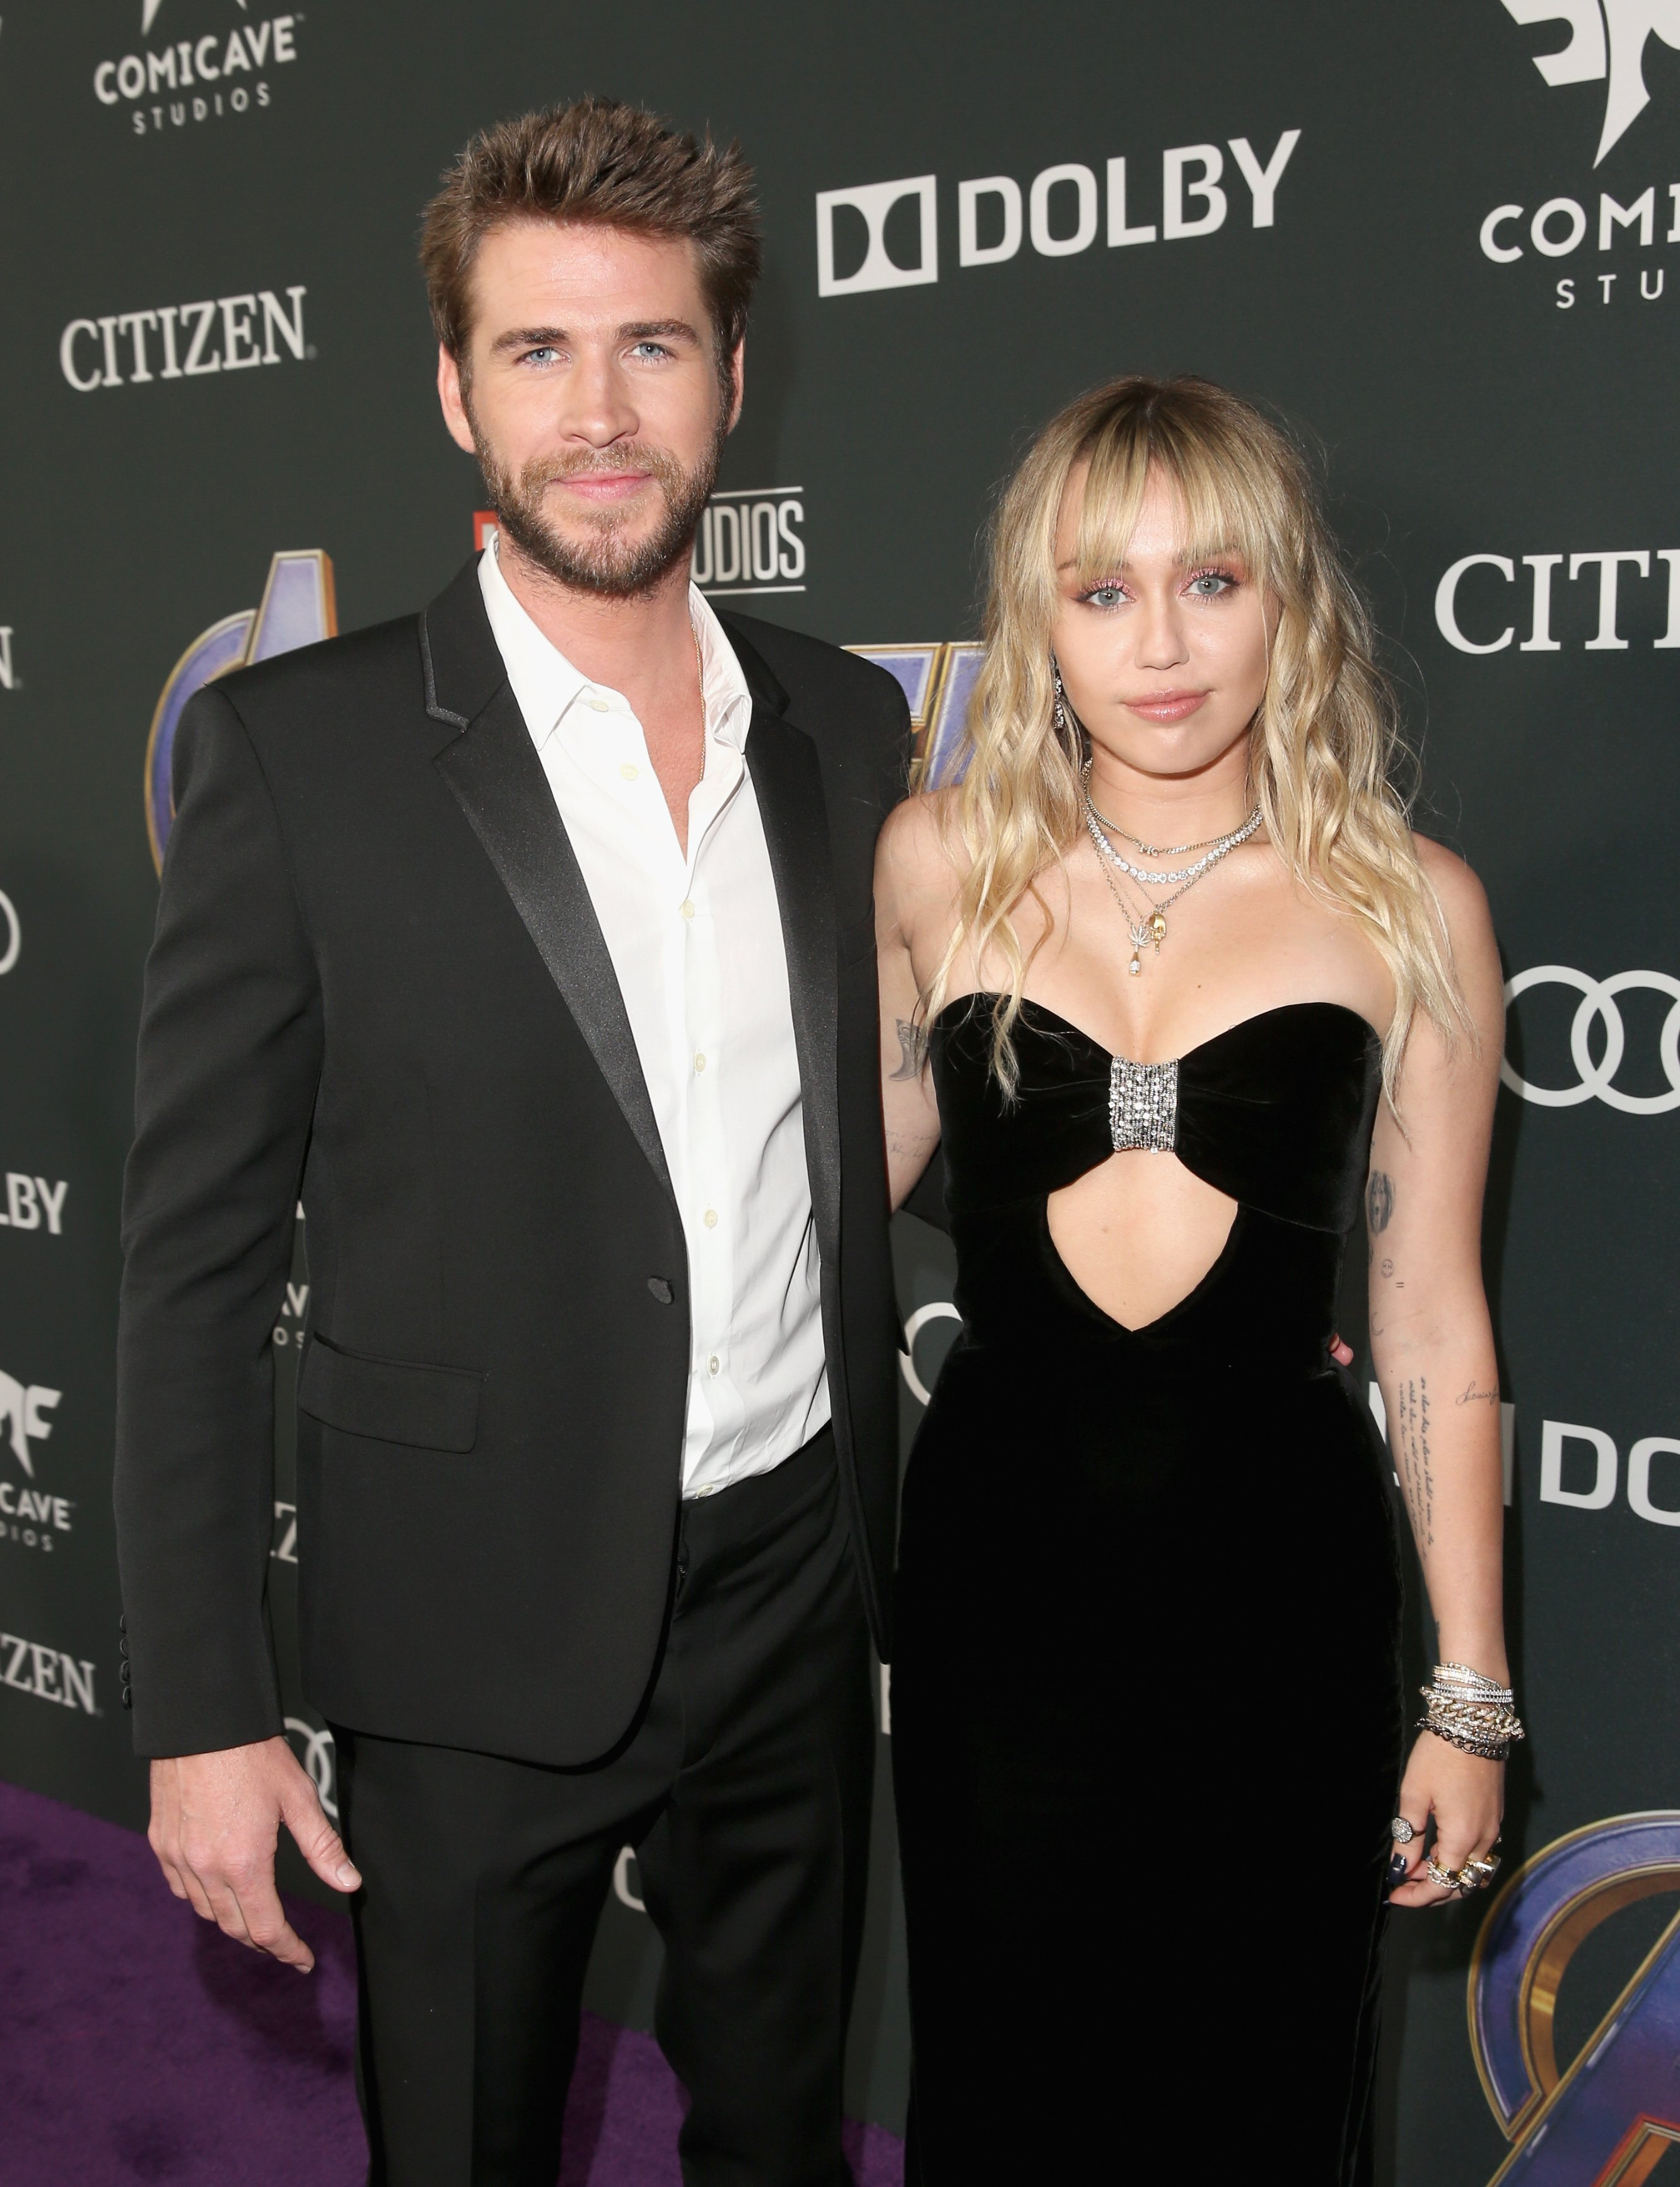 """Liam Hemsworth and Miley Cyrus at the world premiere of Marvel Studios' """"Avengers: Endgame"""" at the Los Angeles Convention Center on April 23, 2019 in California 